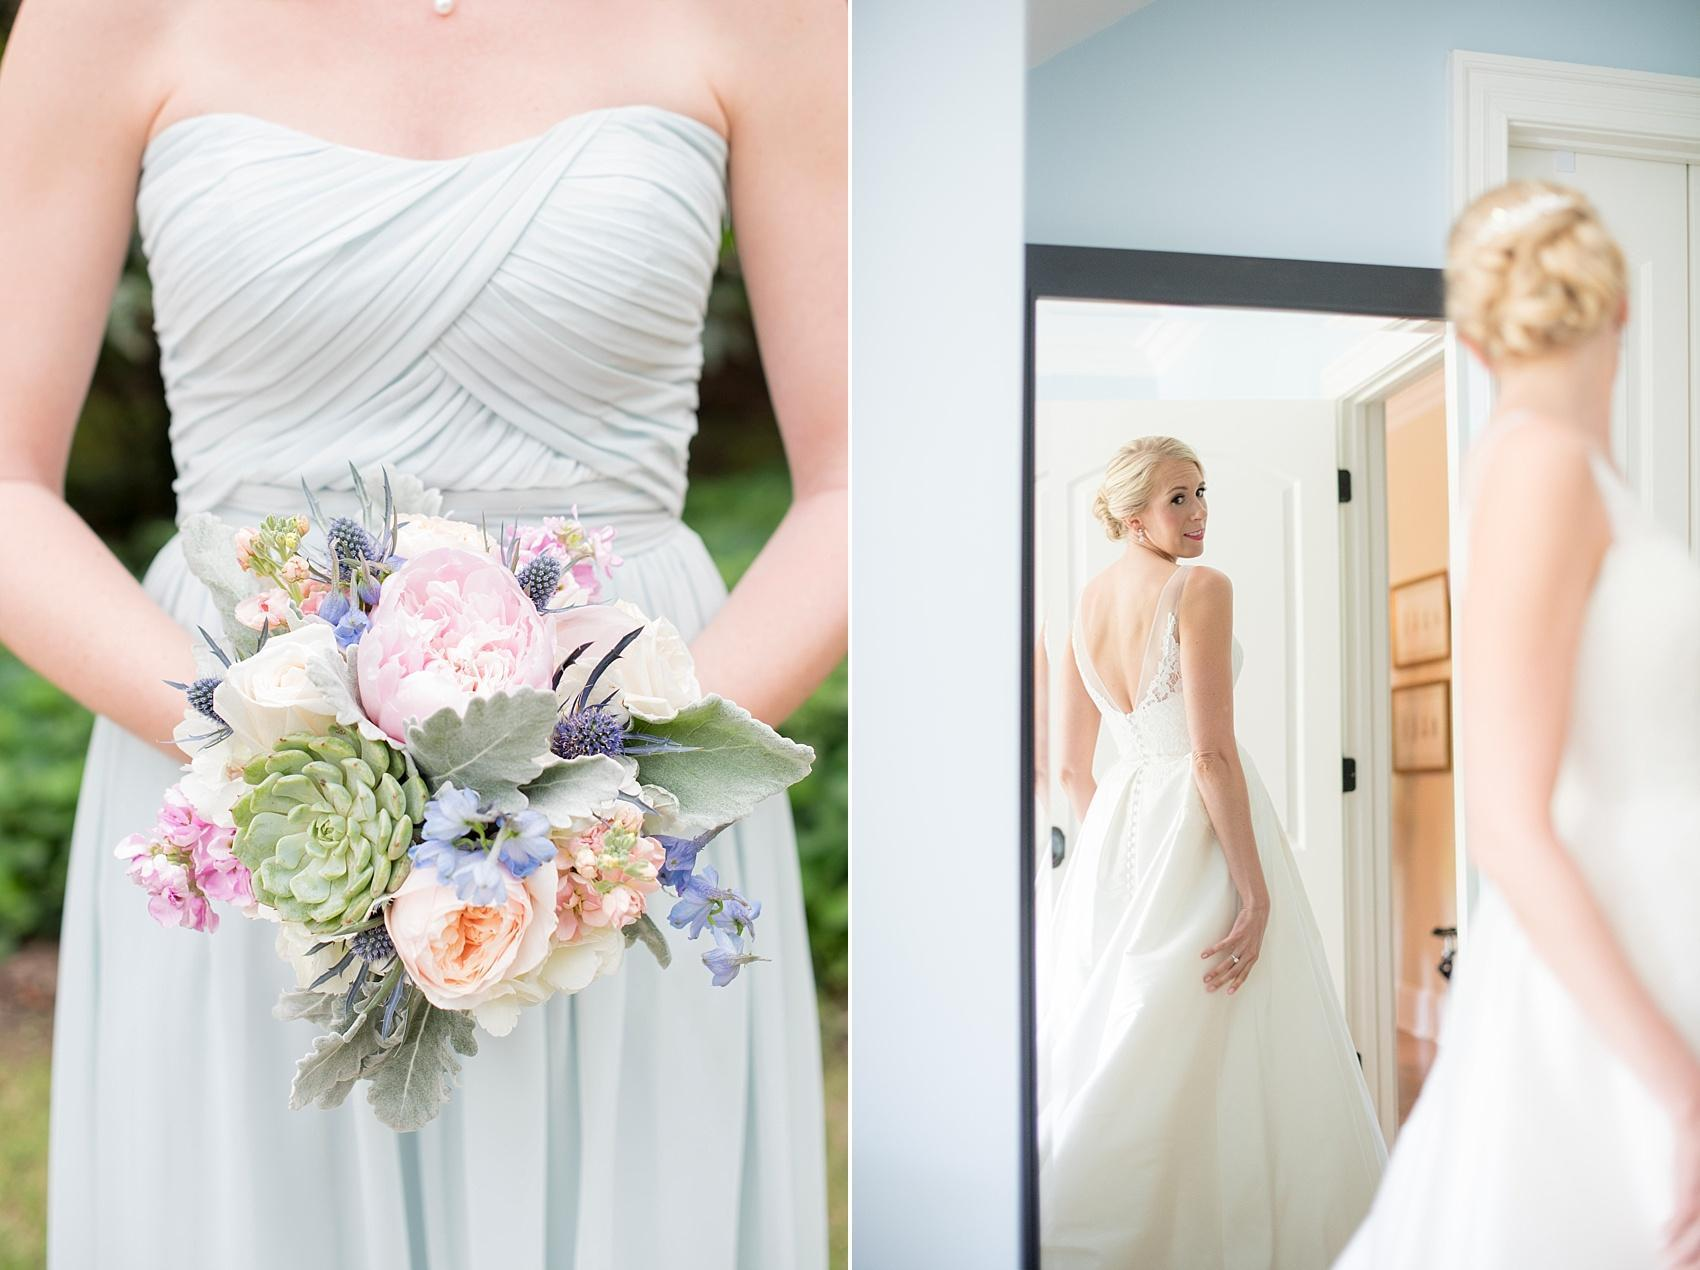 Mikkel Paige Photography photos of a bridesmaid in light blue with a spring bouquet of peonies and succulents and the bride in her gown for a Market Hall wedding in Raleigh.